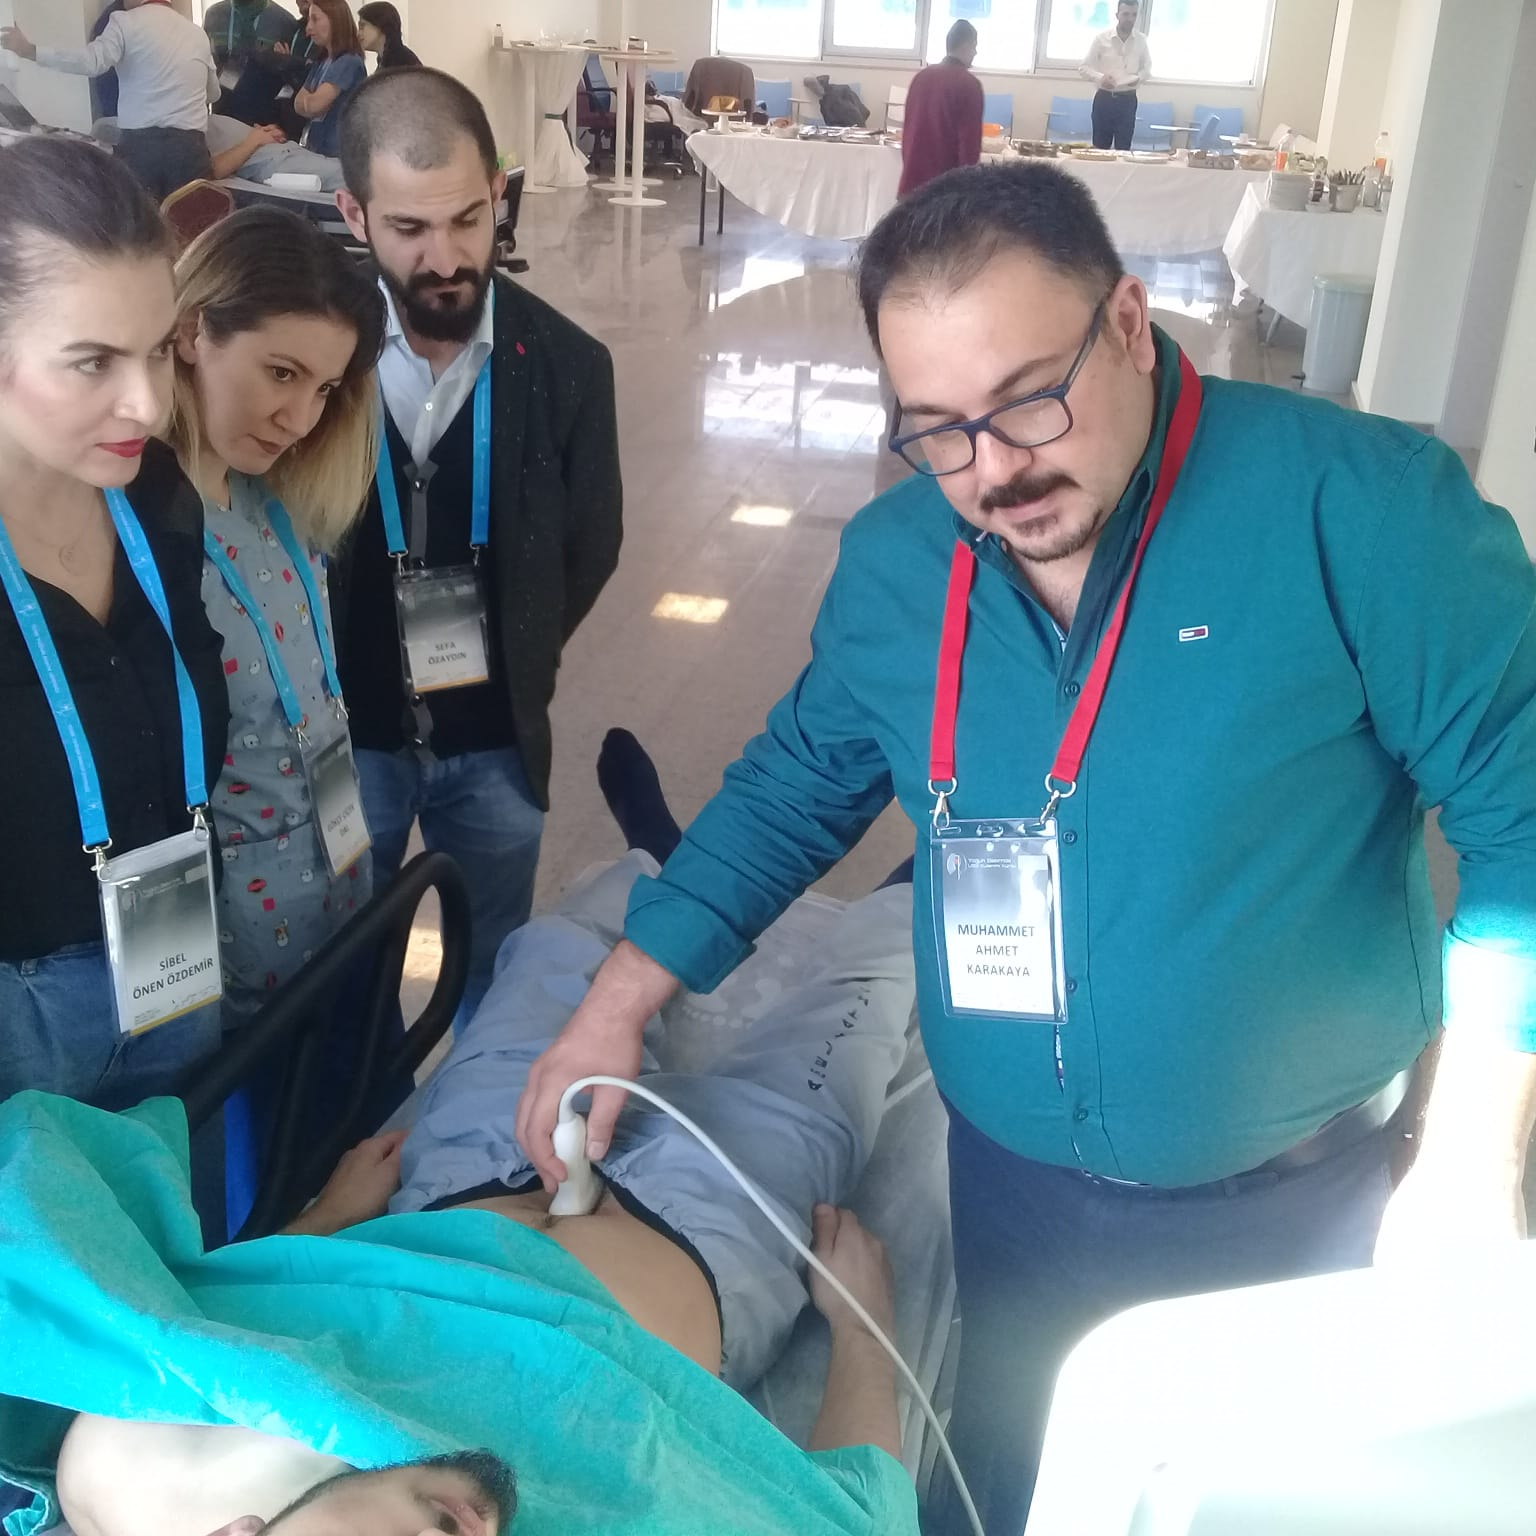 After the 10th USG Usage Course in Intensive Care